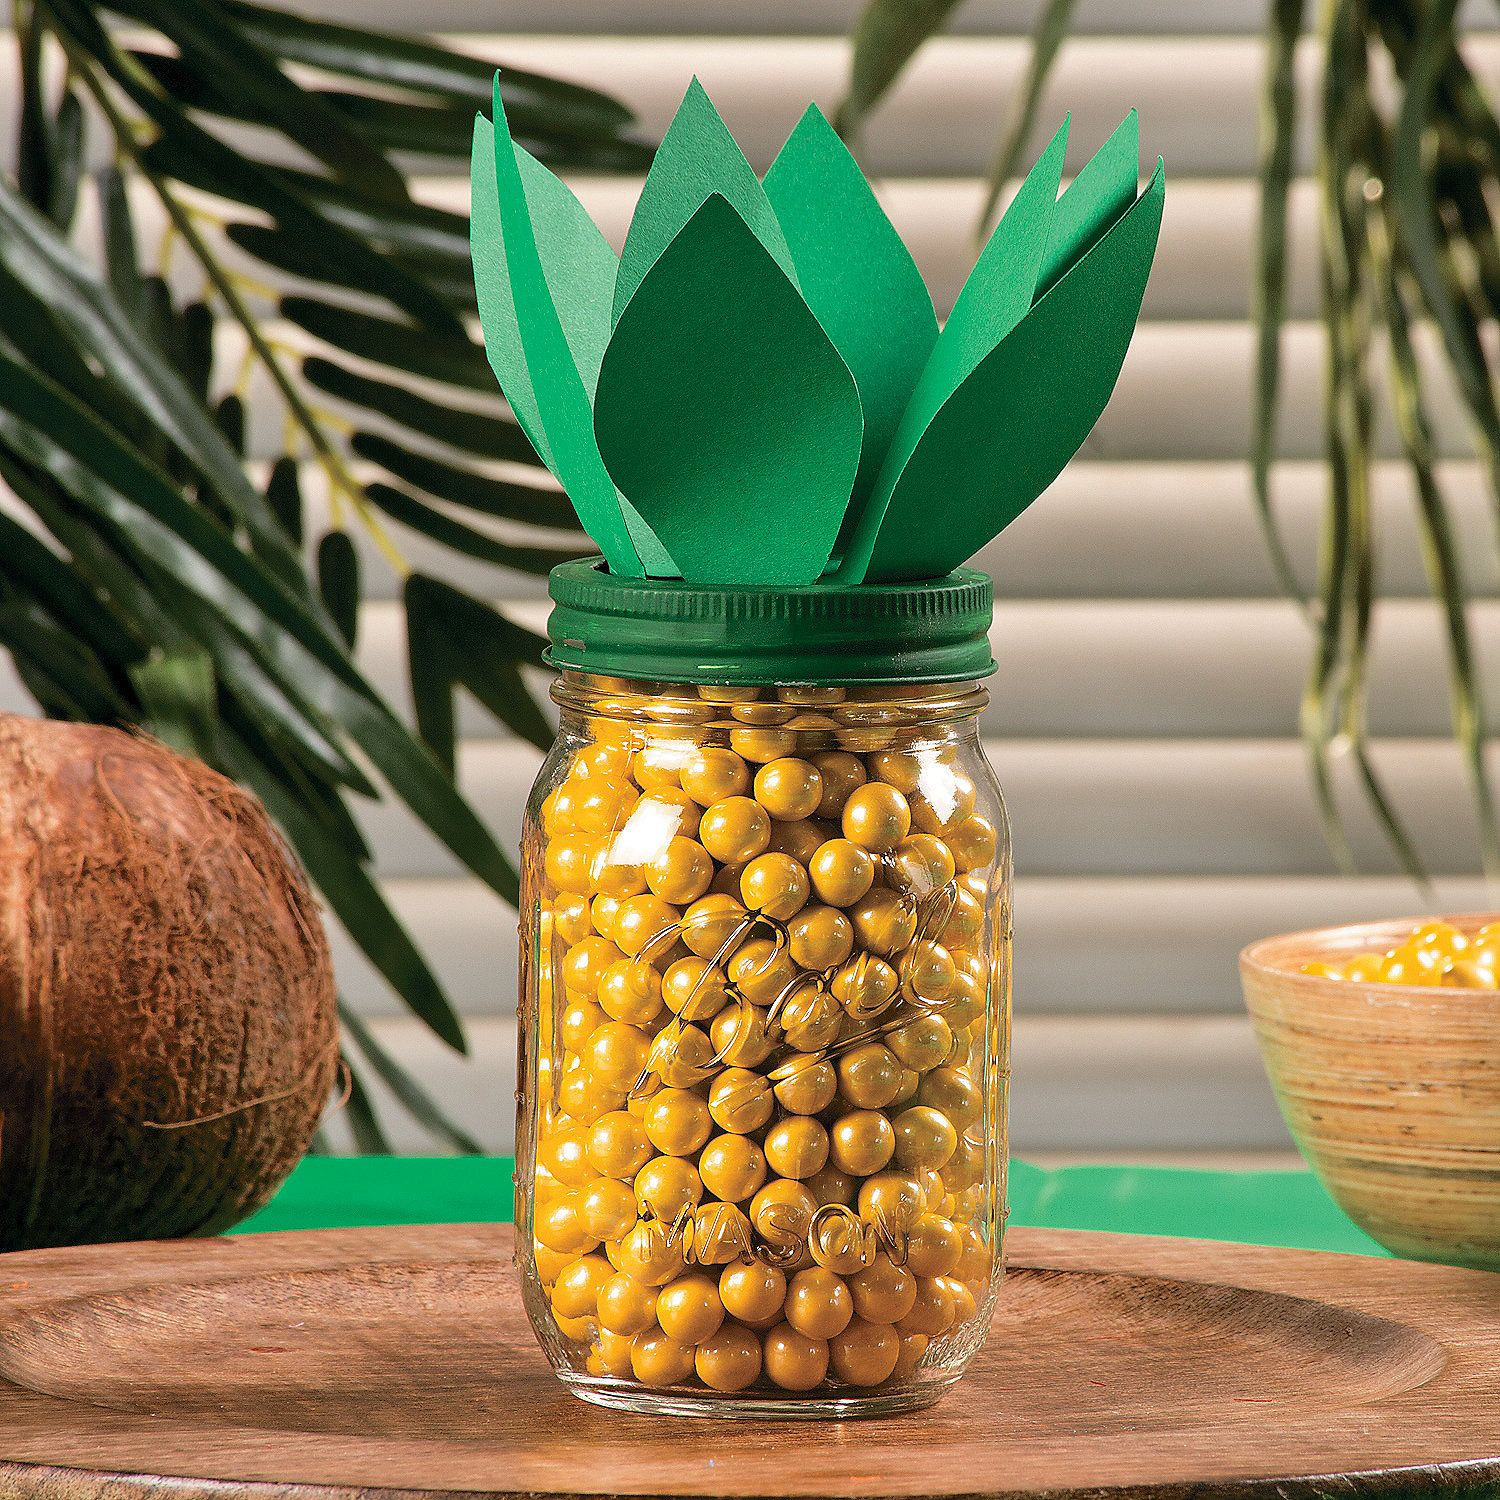 Pineapple Candy Jar Idea Create A Tropical Centerpiece Your Guests